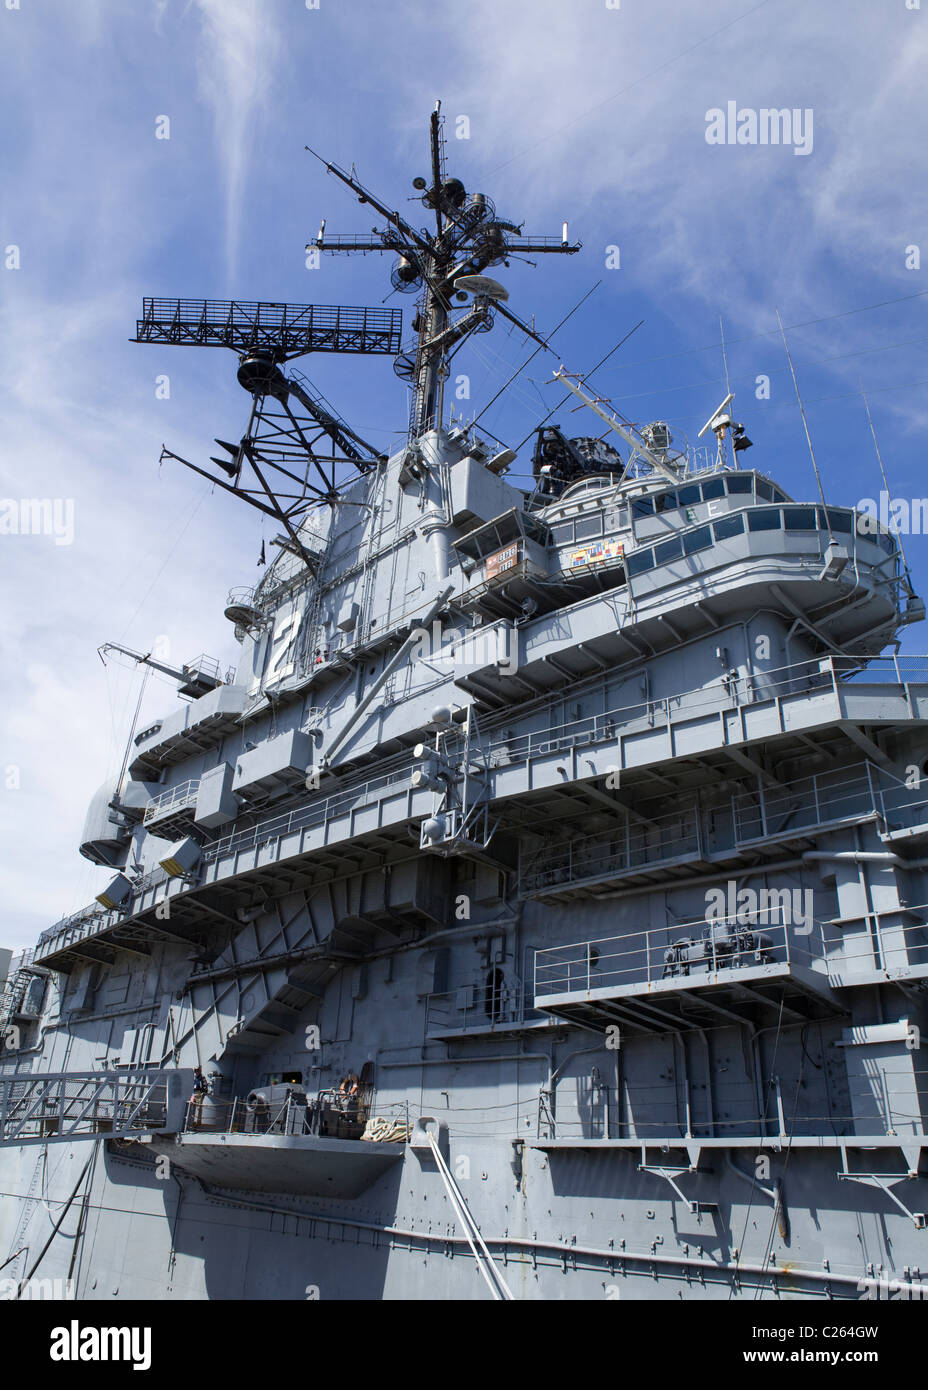 USS Hornet, US Navy Essex-class aircraft carrier - Alameda, California USA - Stock Image